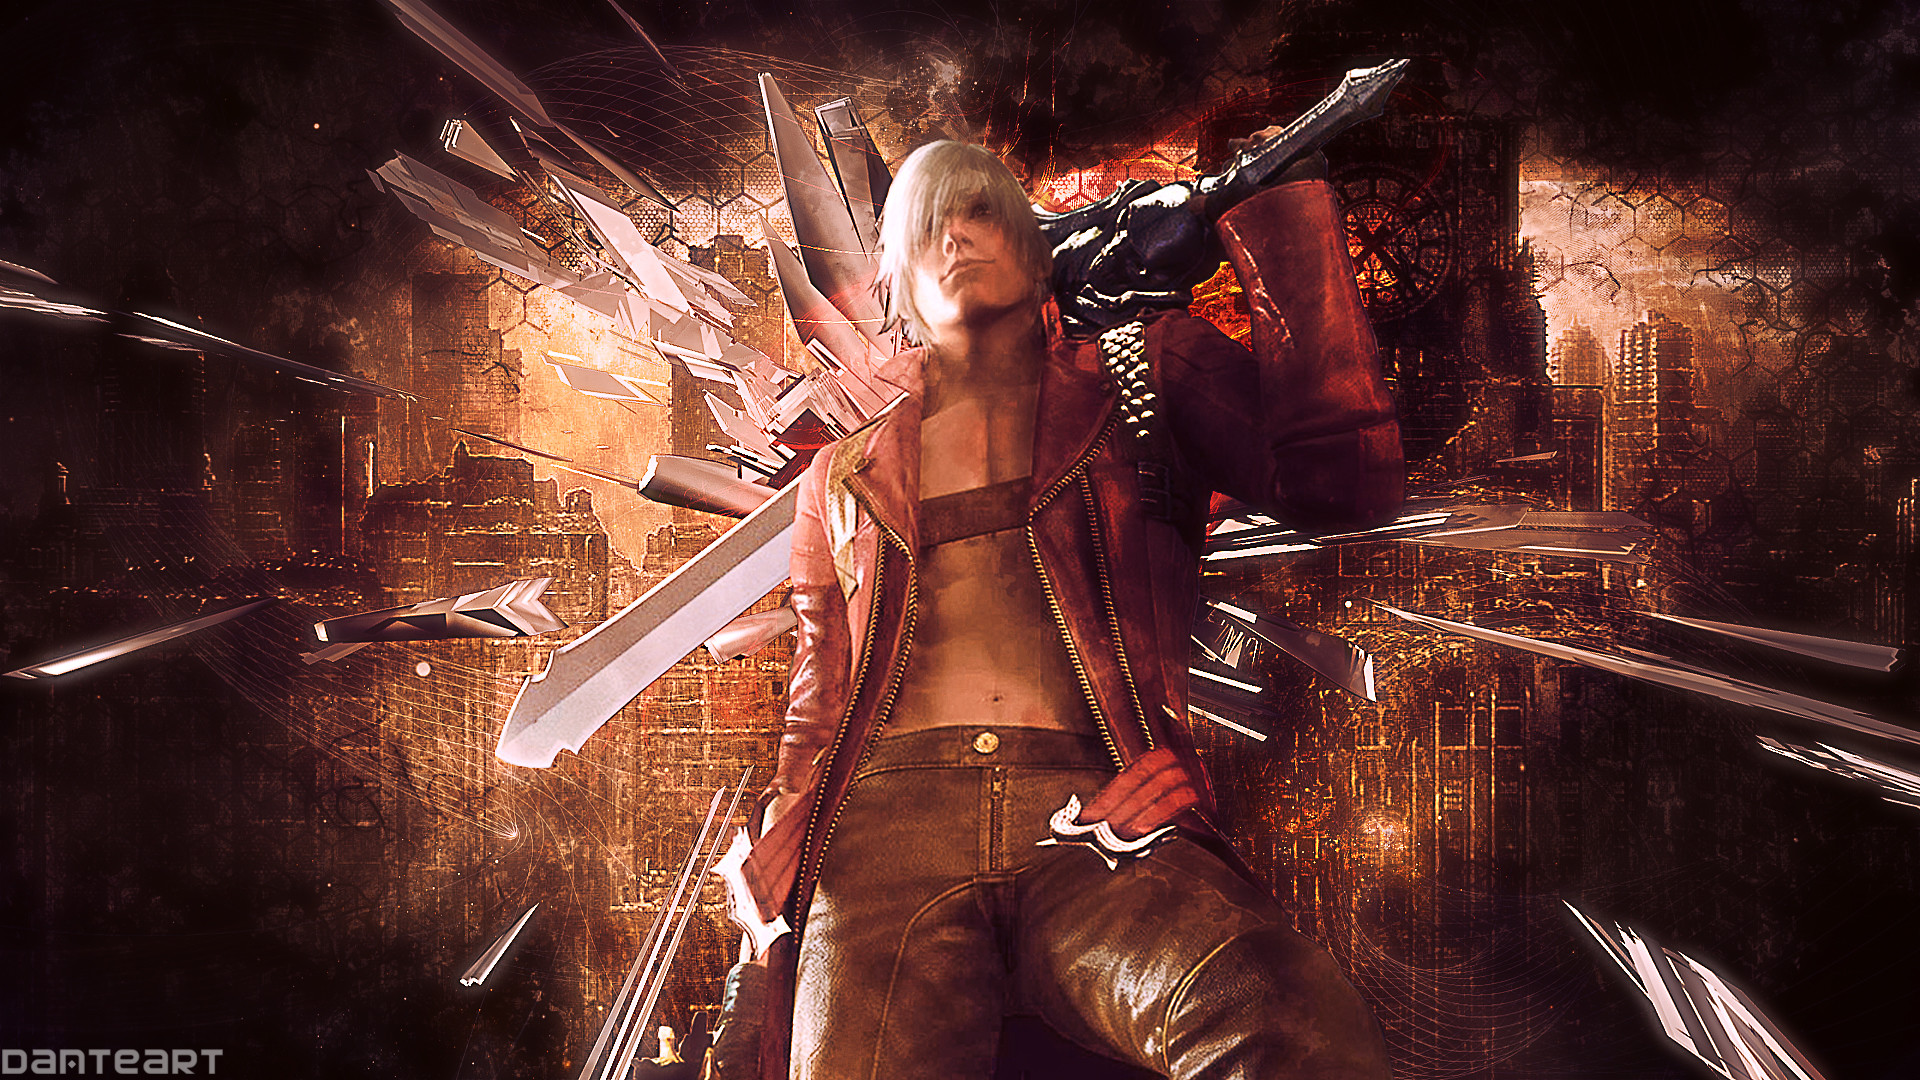 Devil may cry 3 wallpaper 62 images - Devil may cry hd pics ...